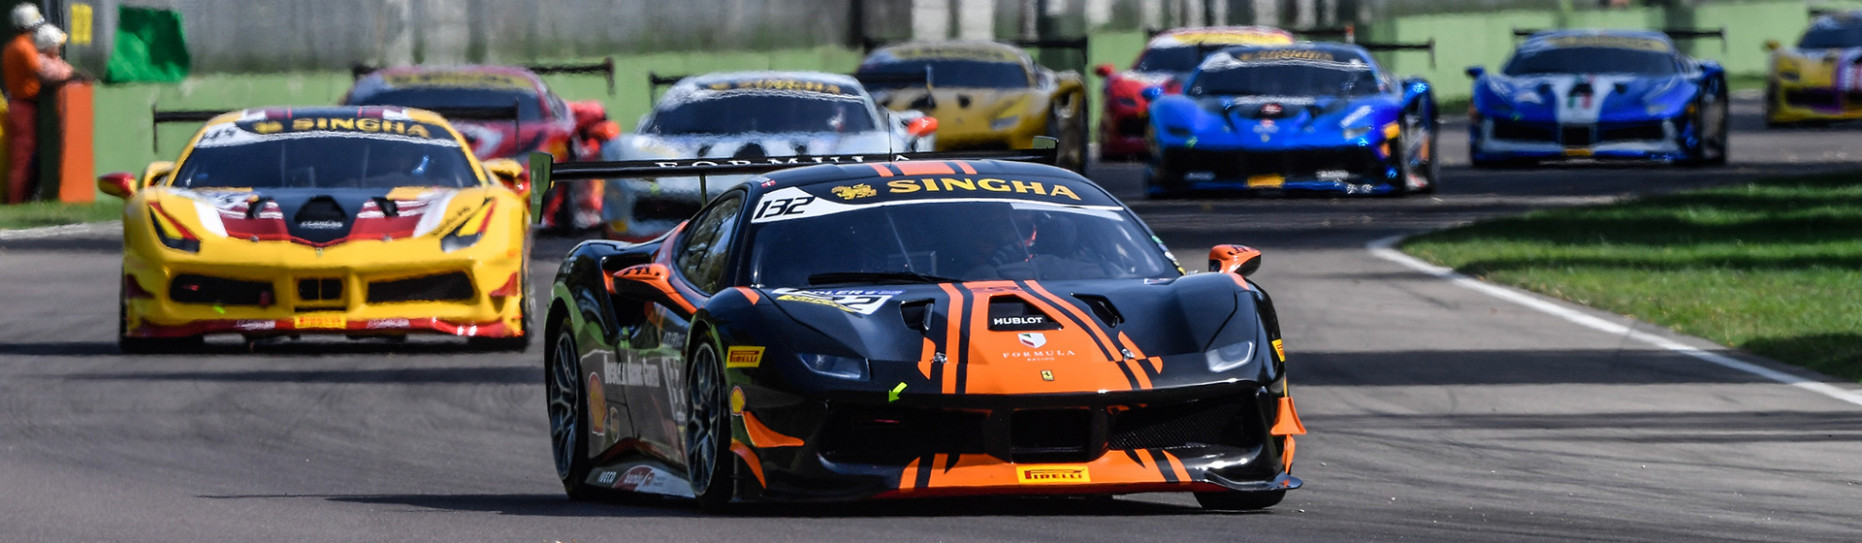 8 Ferrari Challenge Europe calendar revealed - ferrari racing days 2020 uk